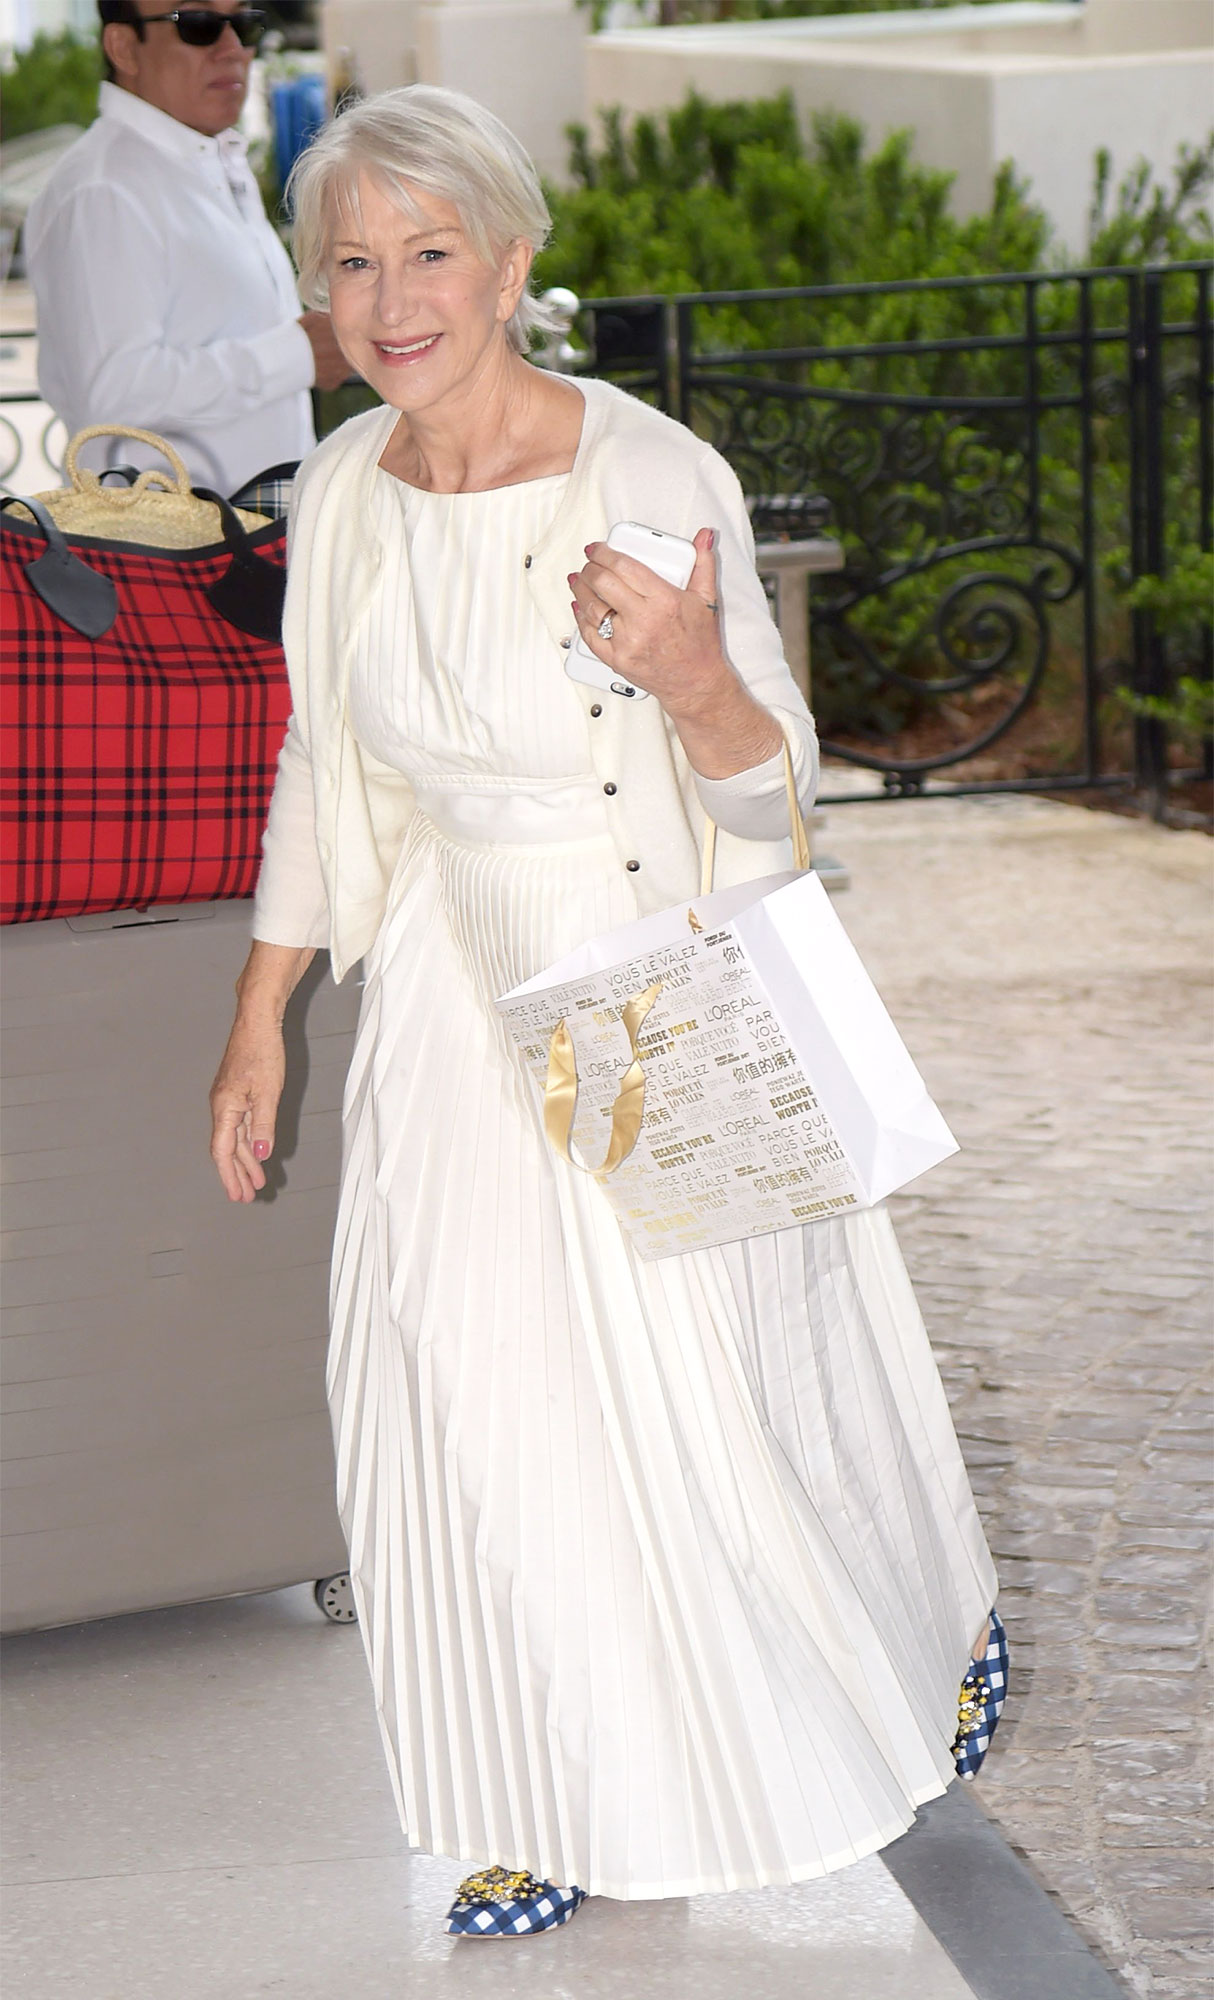 Helen Mirren out and about, 71st Cannes Film Festival, France - 13 May 2018